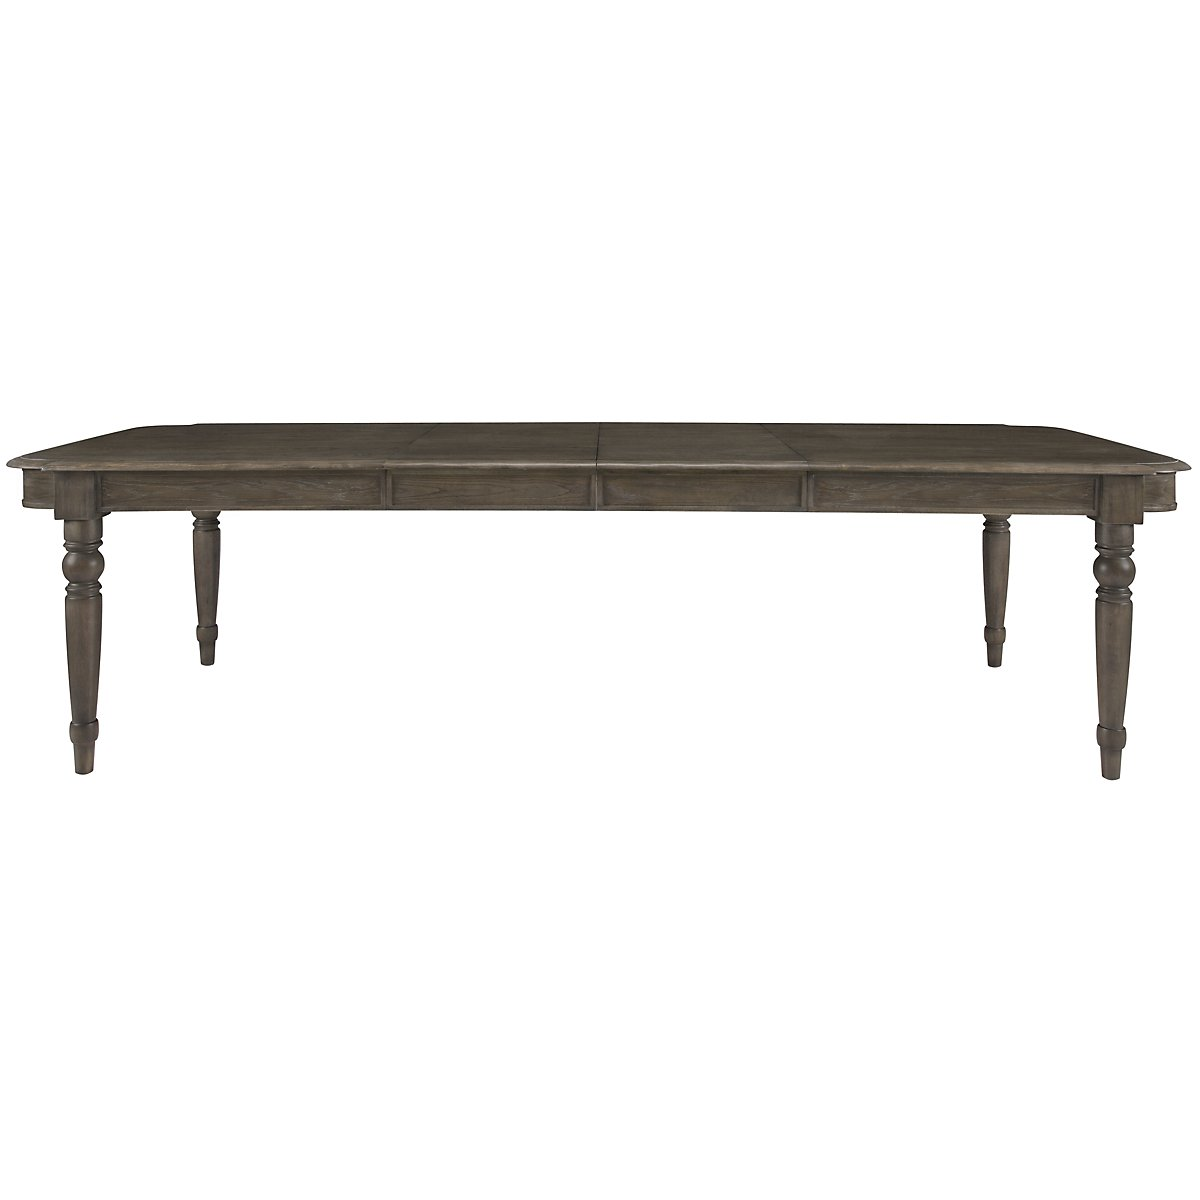 Belgian Oak Light Tone Rectangular Table